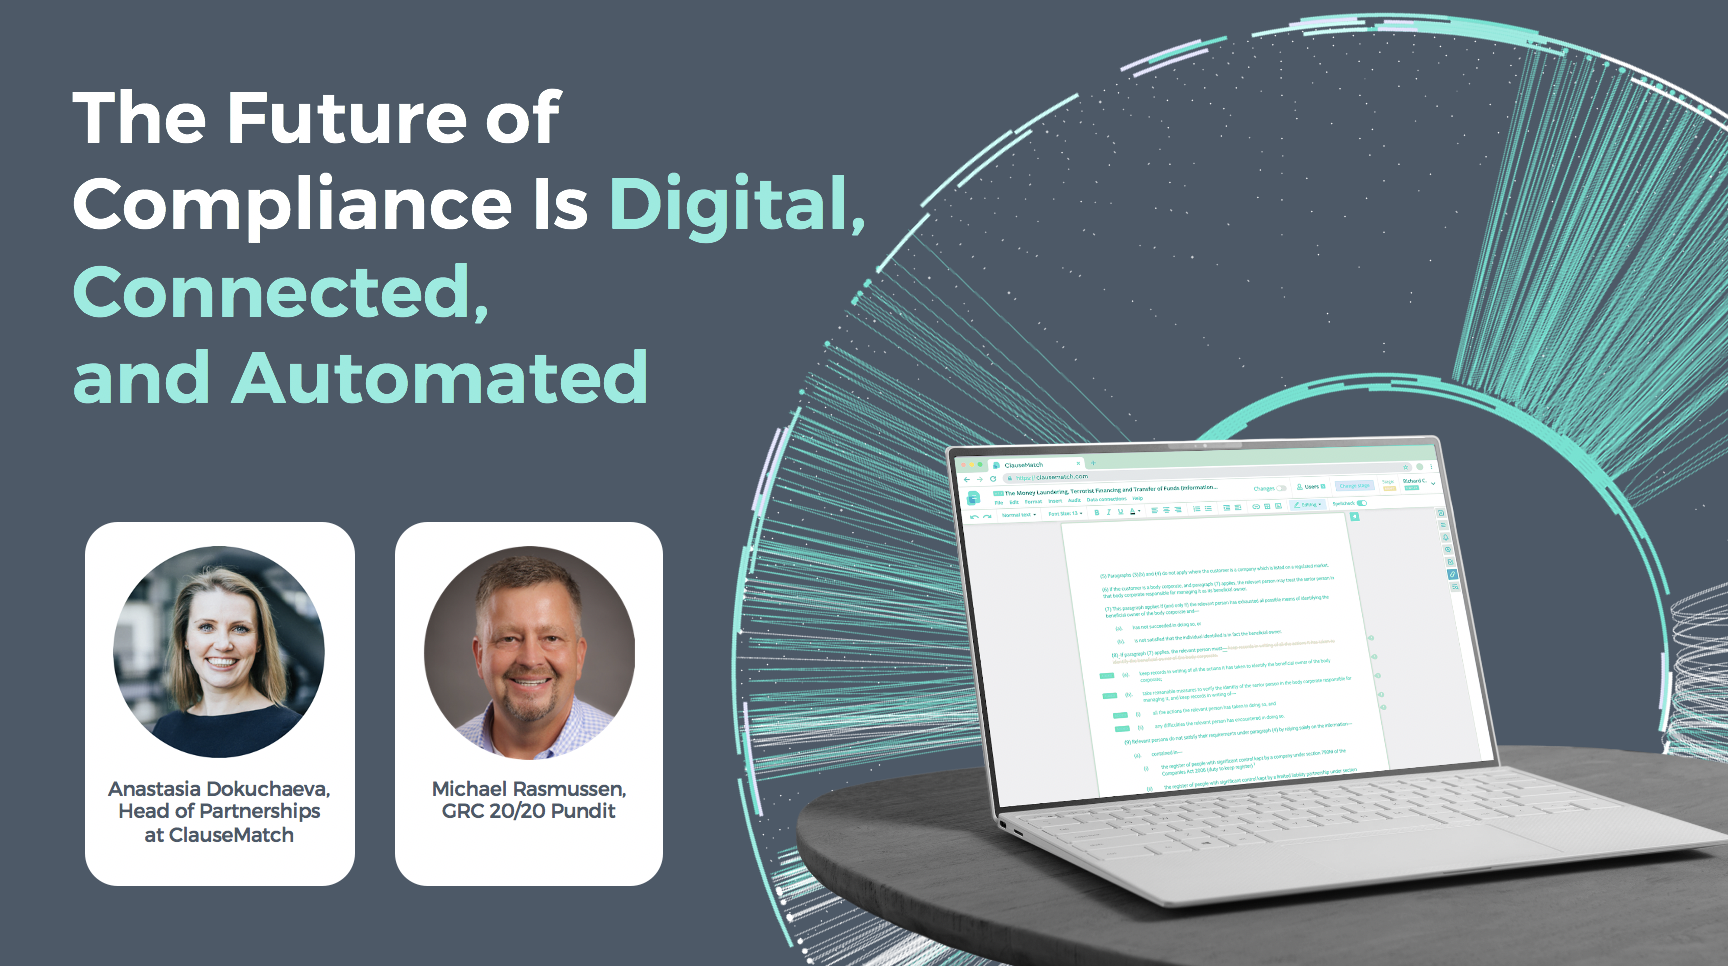 The Future of Compliance is Digital, Connected and Automated